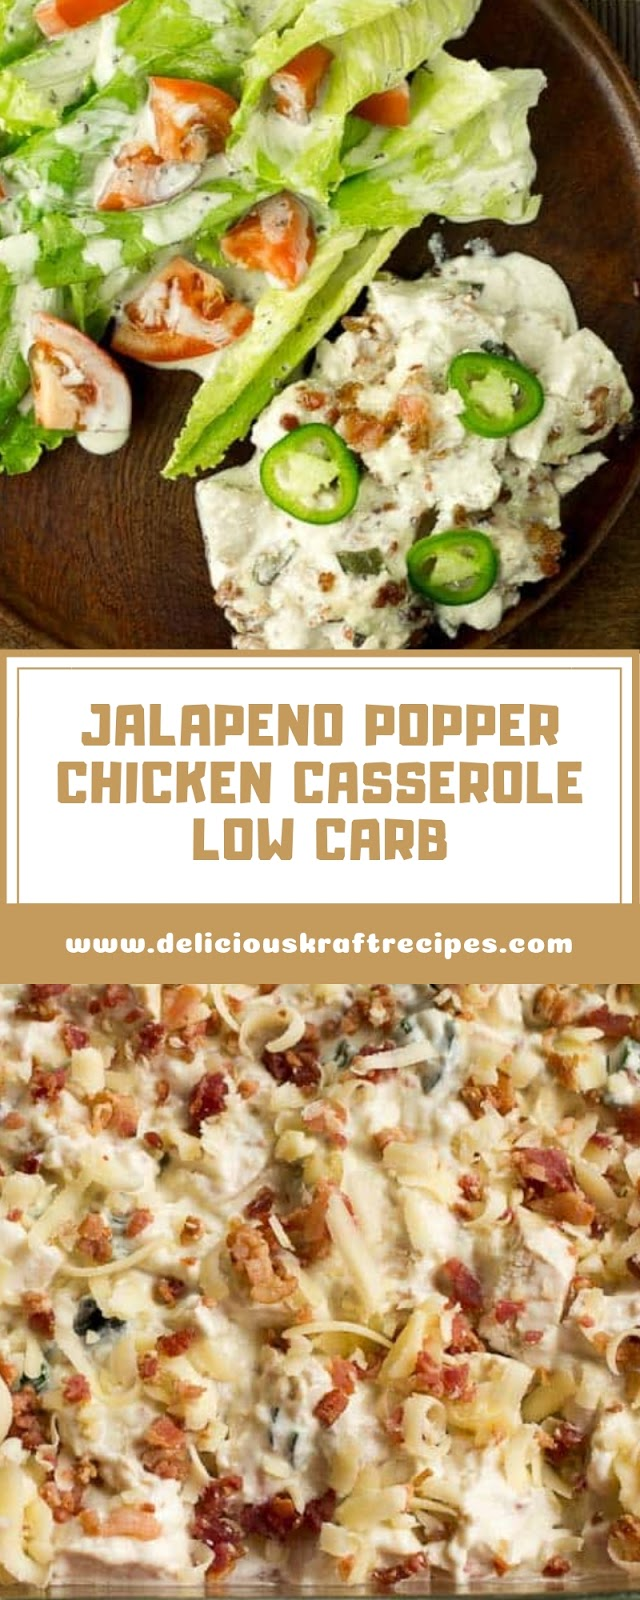 JALAPENO POPPER CHICKEN CASSEROLE LOW CARB